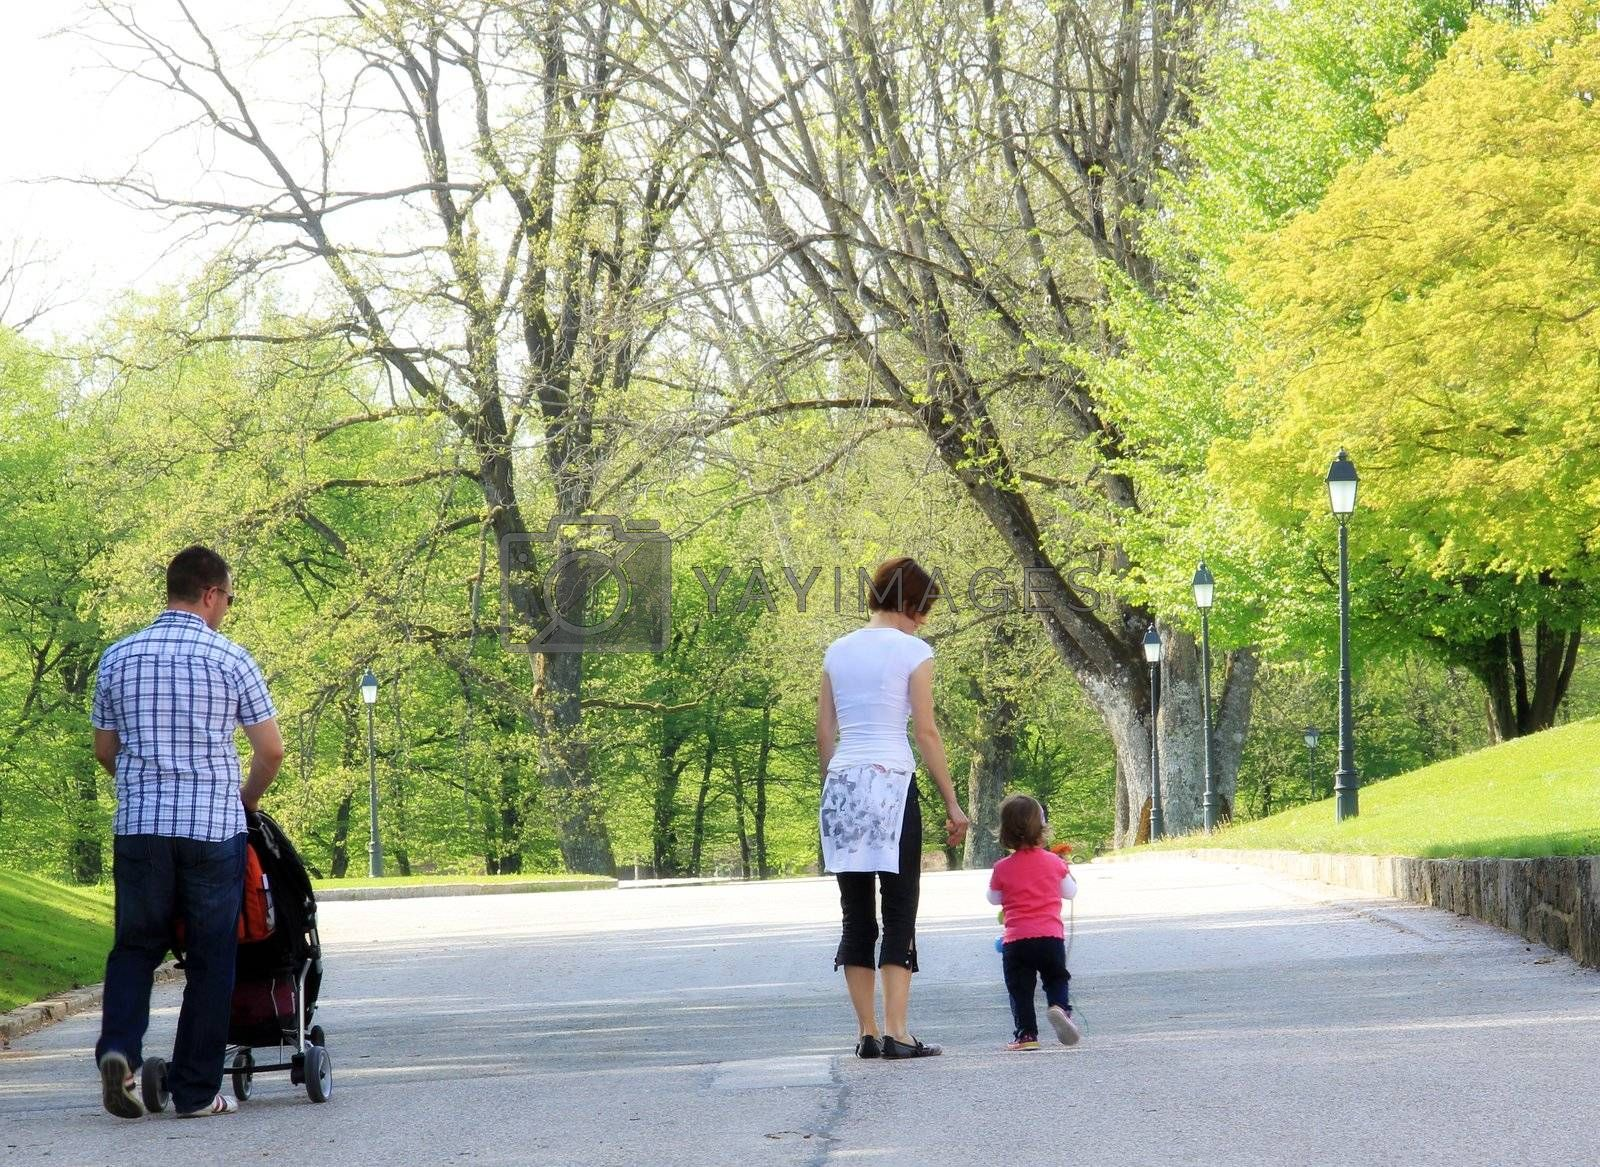 Young and happy family having fun in the park, relaxing, enjoying in beautiful early spring nature.